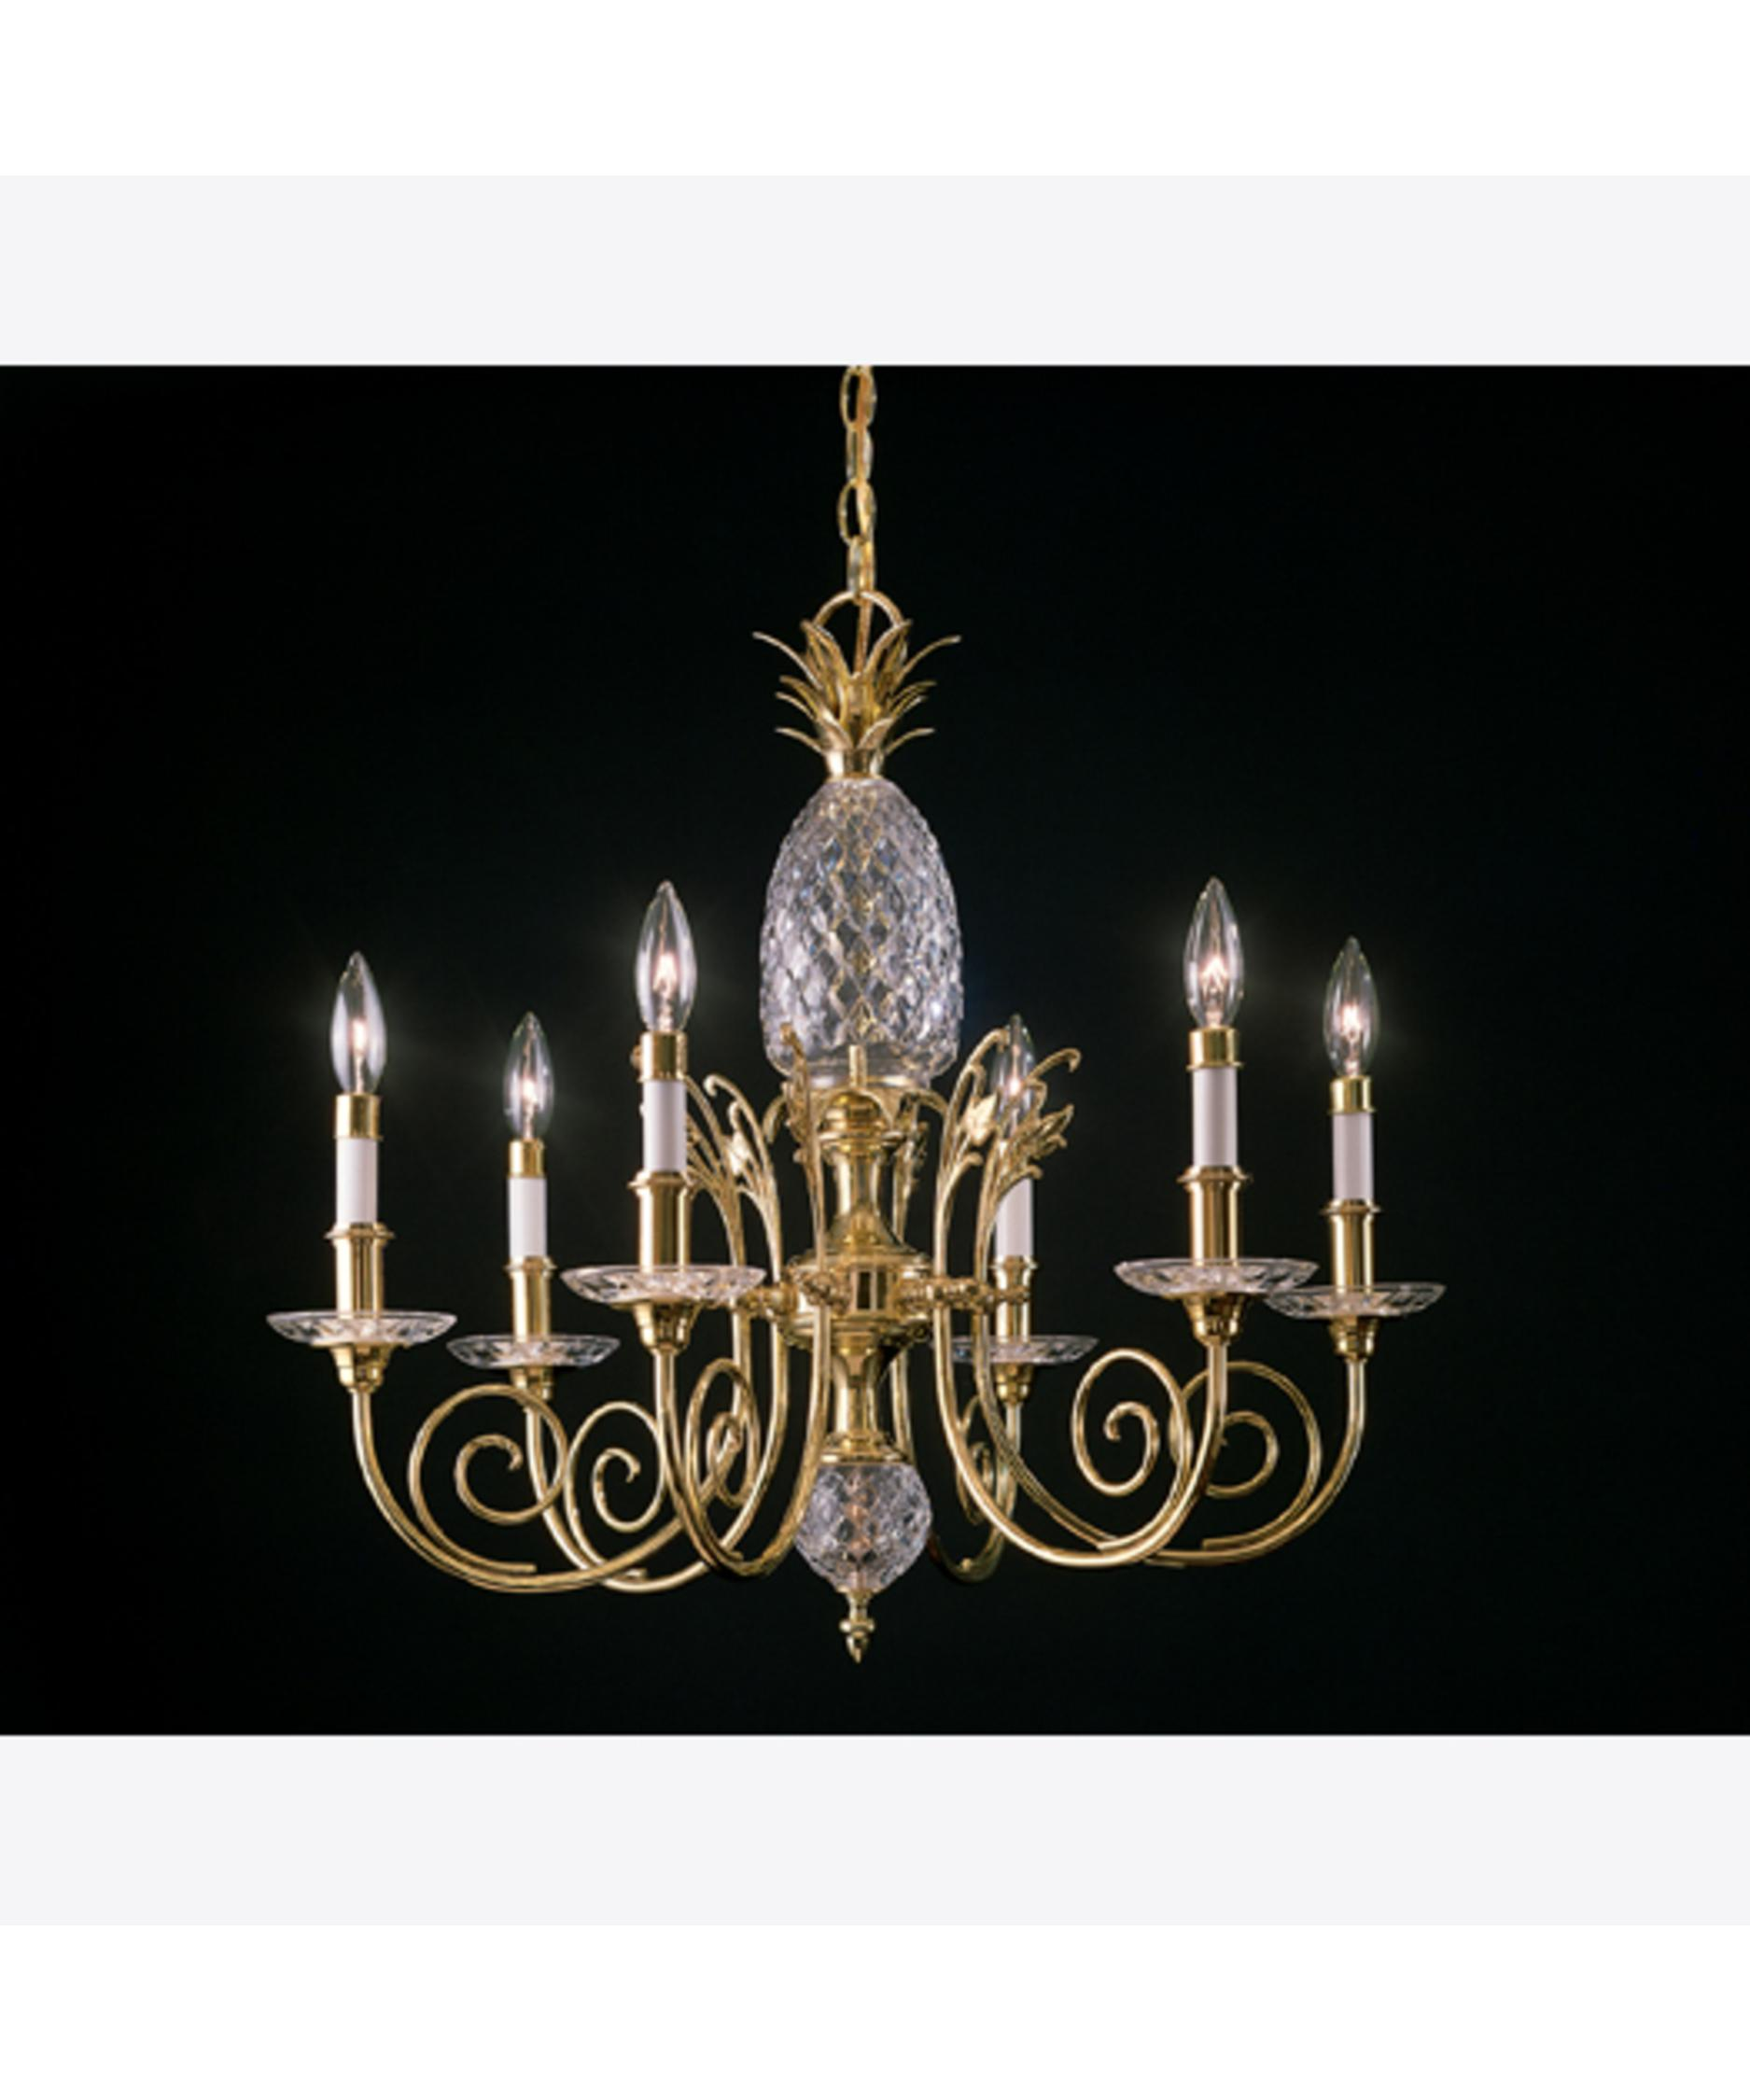 Shown In Polished Brass Finish And 24 Percent Lead Crystal Crystal